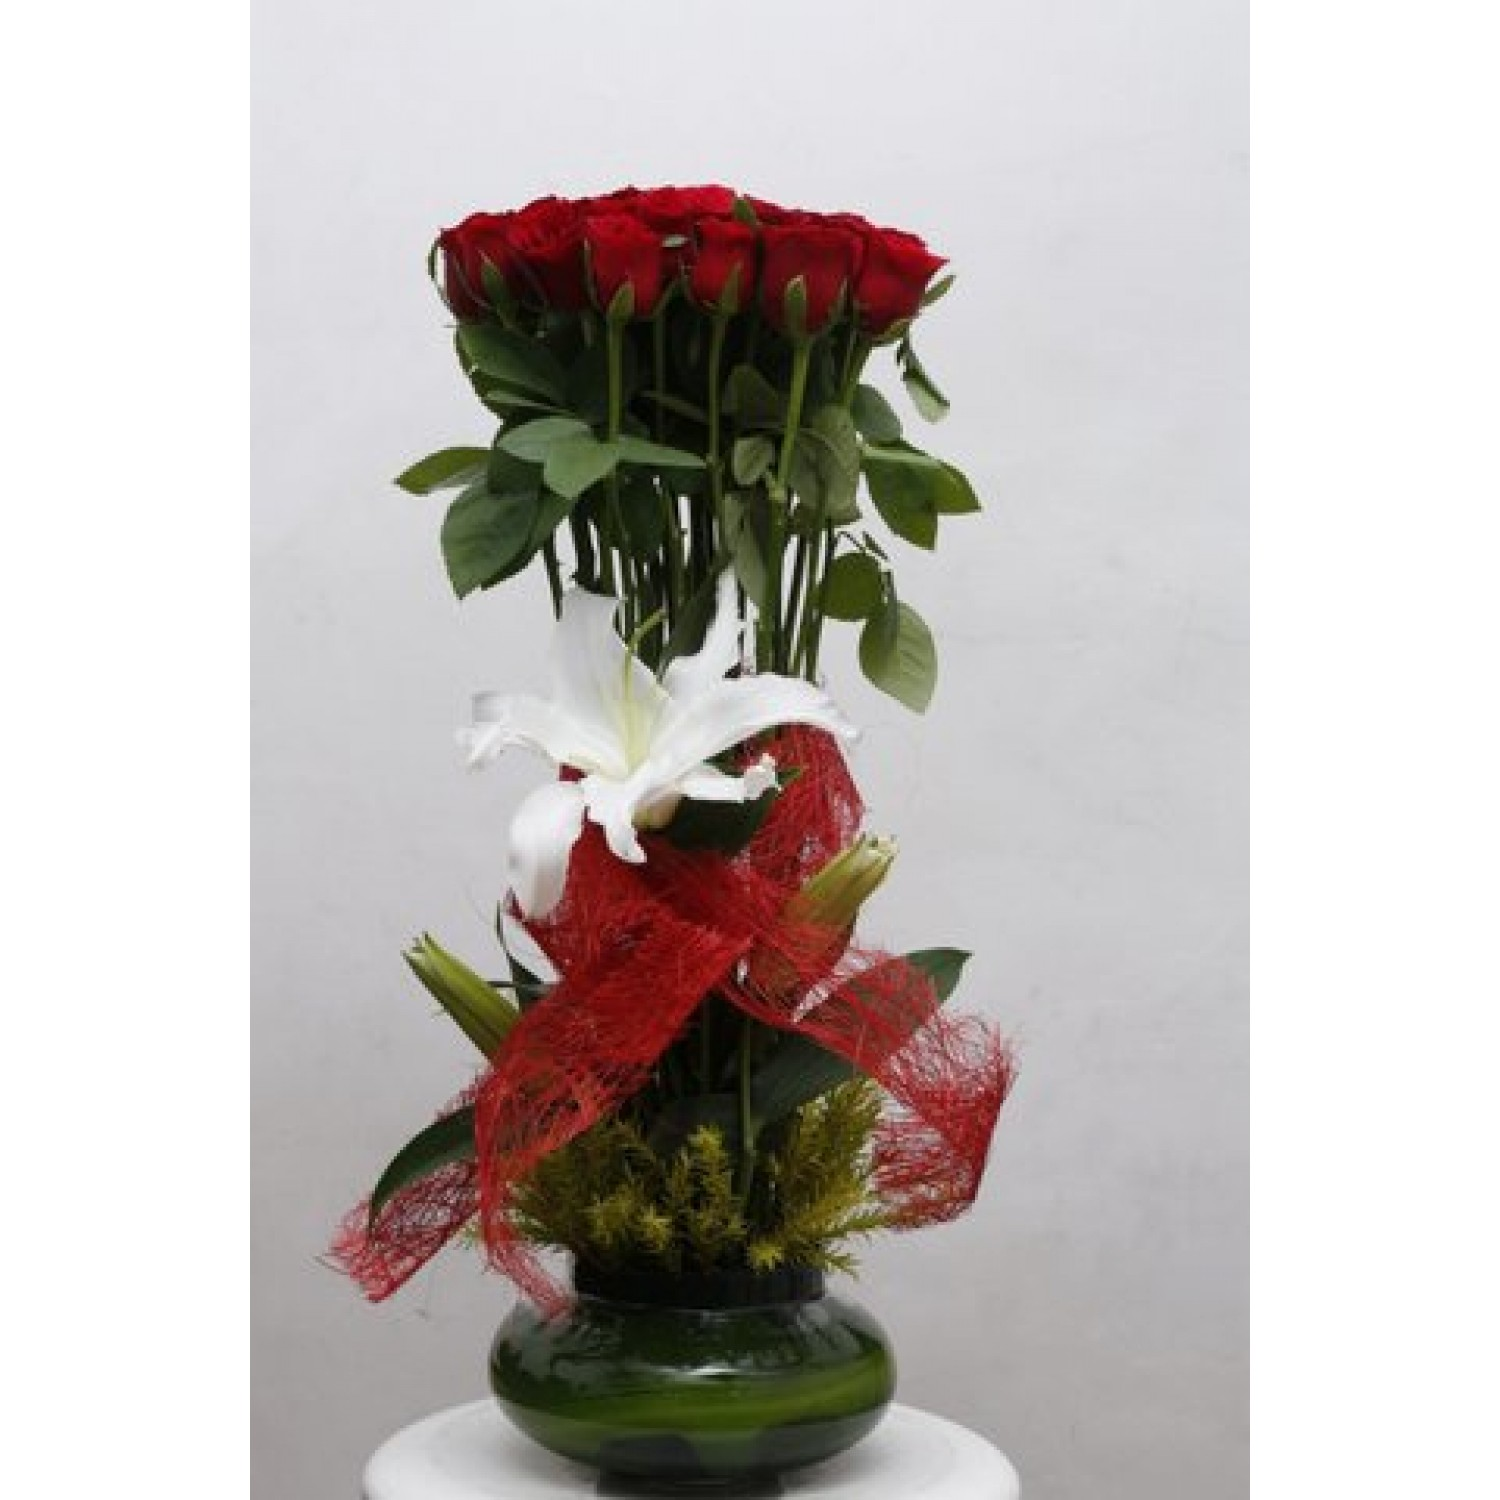 Designer Arrangement With 30 Pcs Red Roses And 1 Pcs White Lily